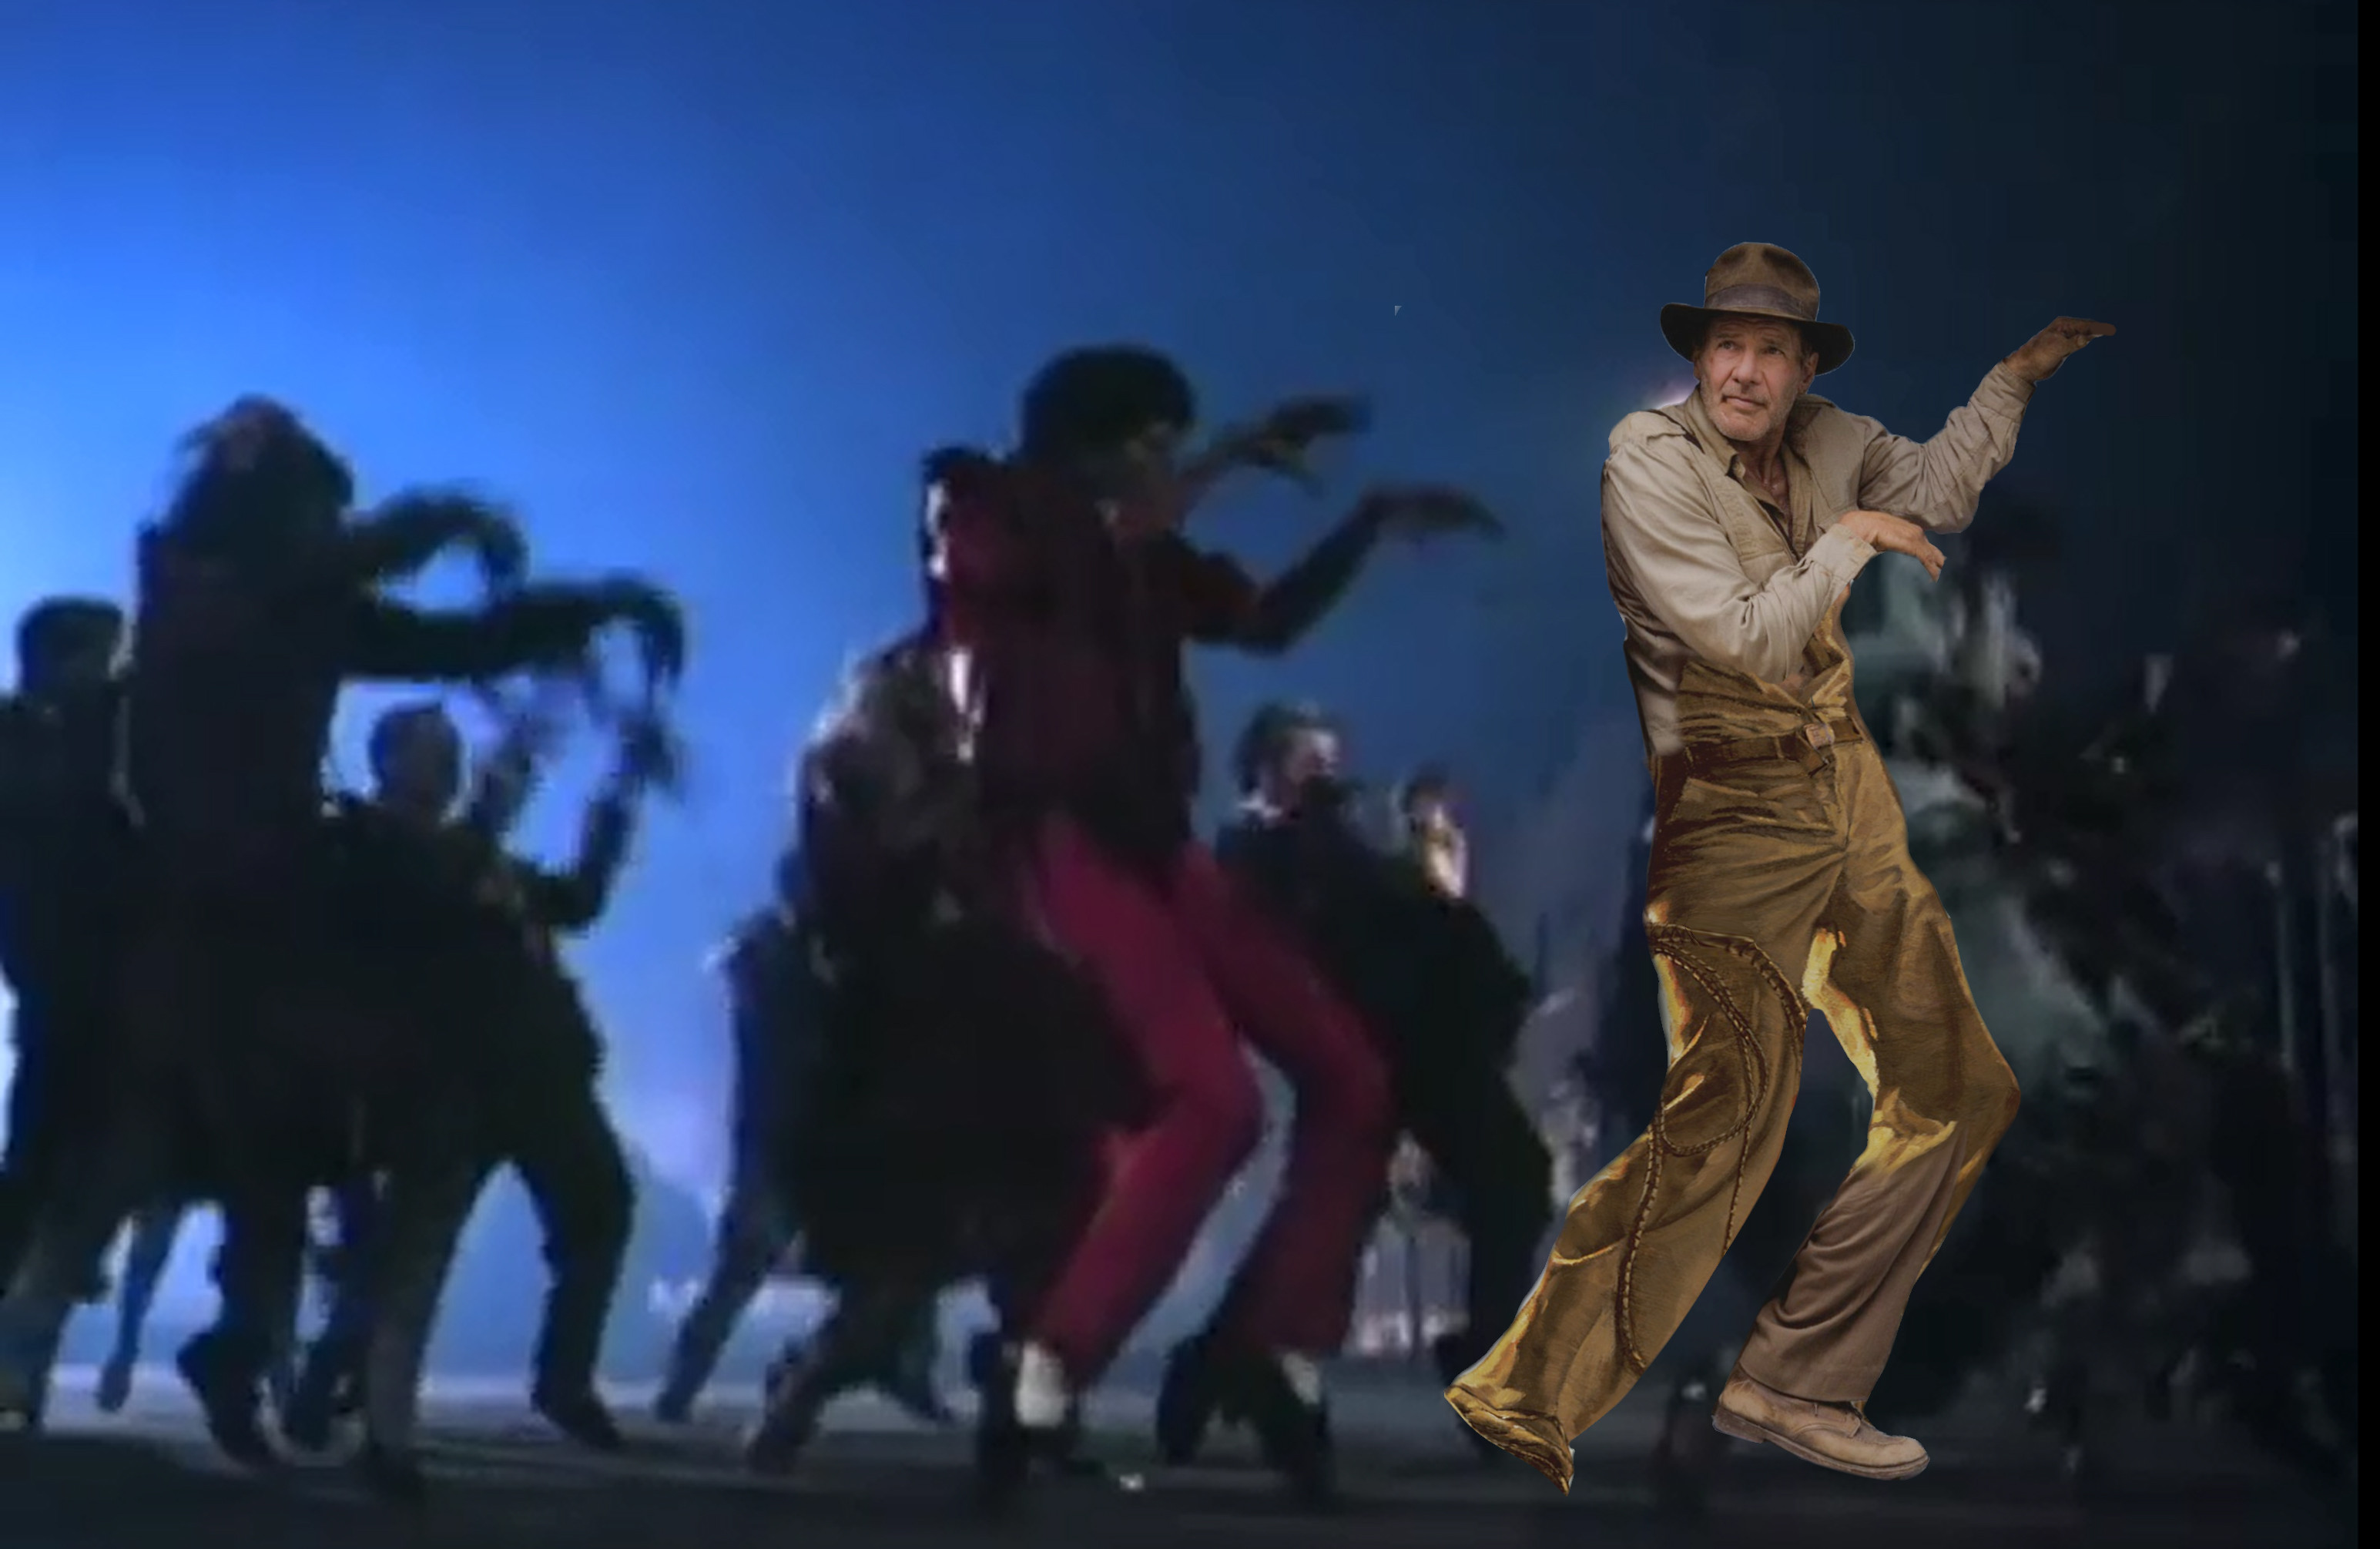 indiana jones fridge pose photoshop battle, indiana jones michael jackson thriller